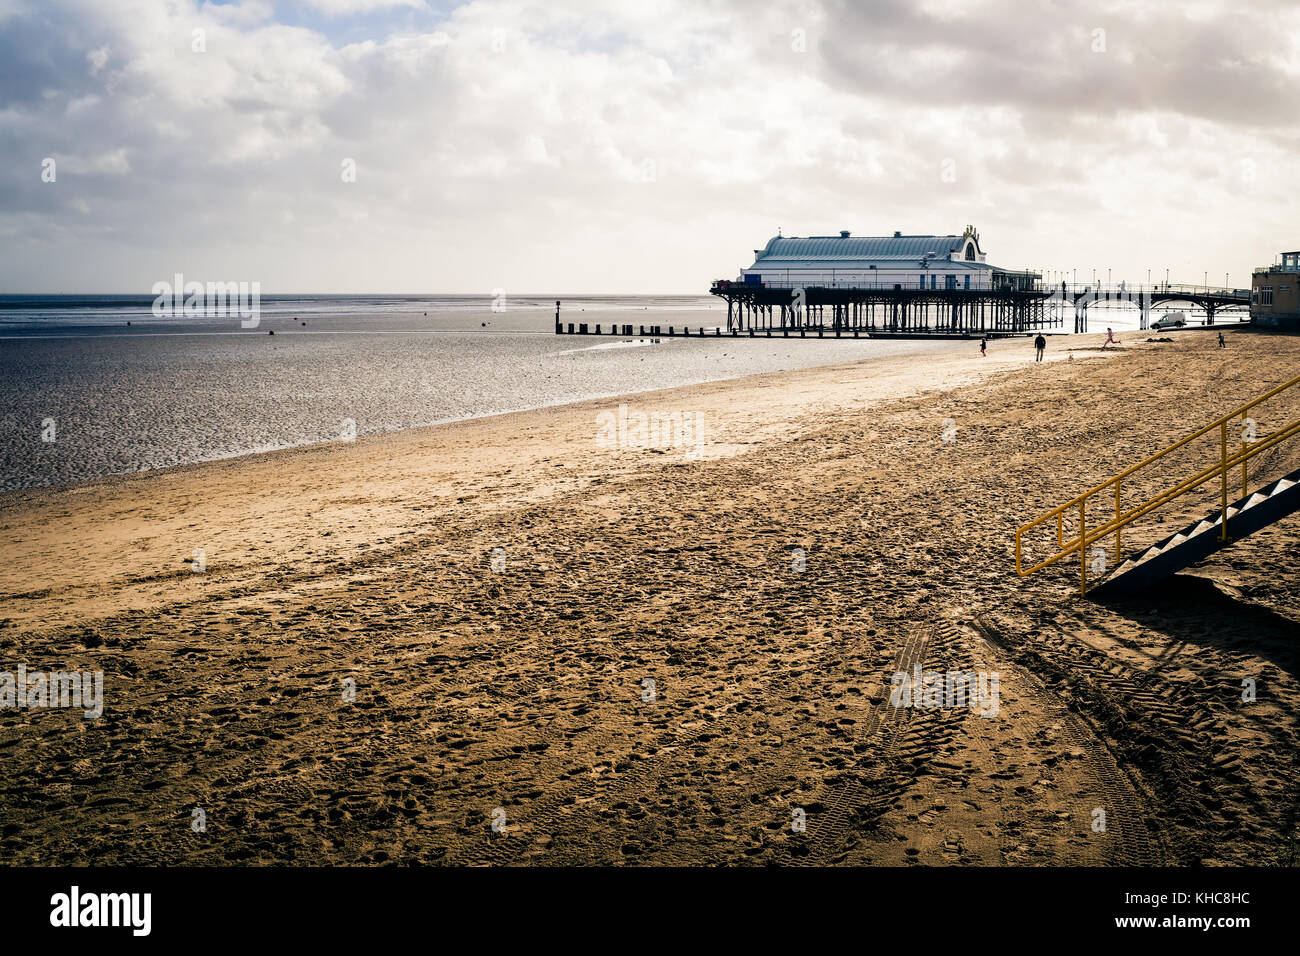 Out of season on Cleethorpes Beach the pier is seen in the background - Stock Image